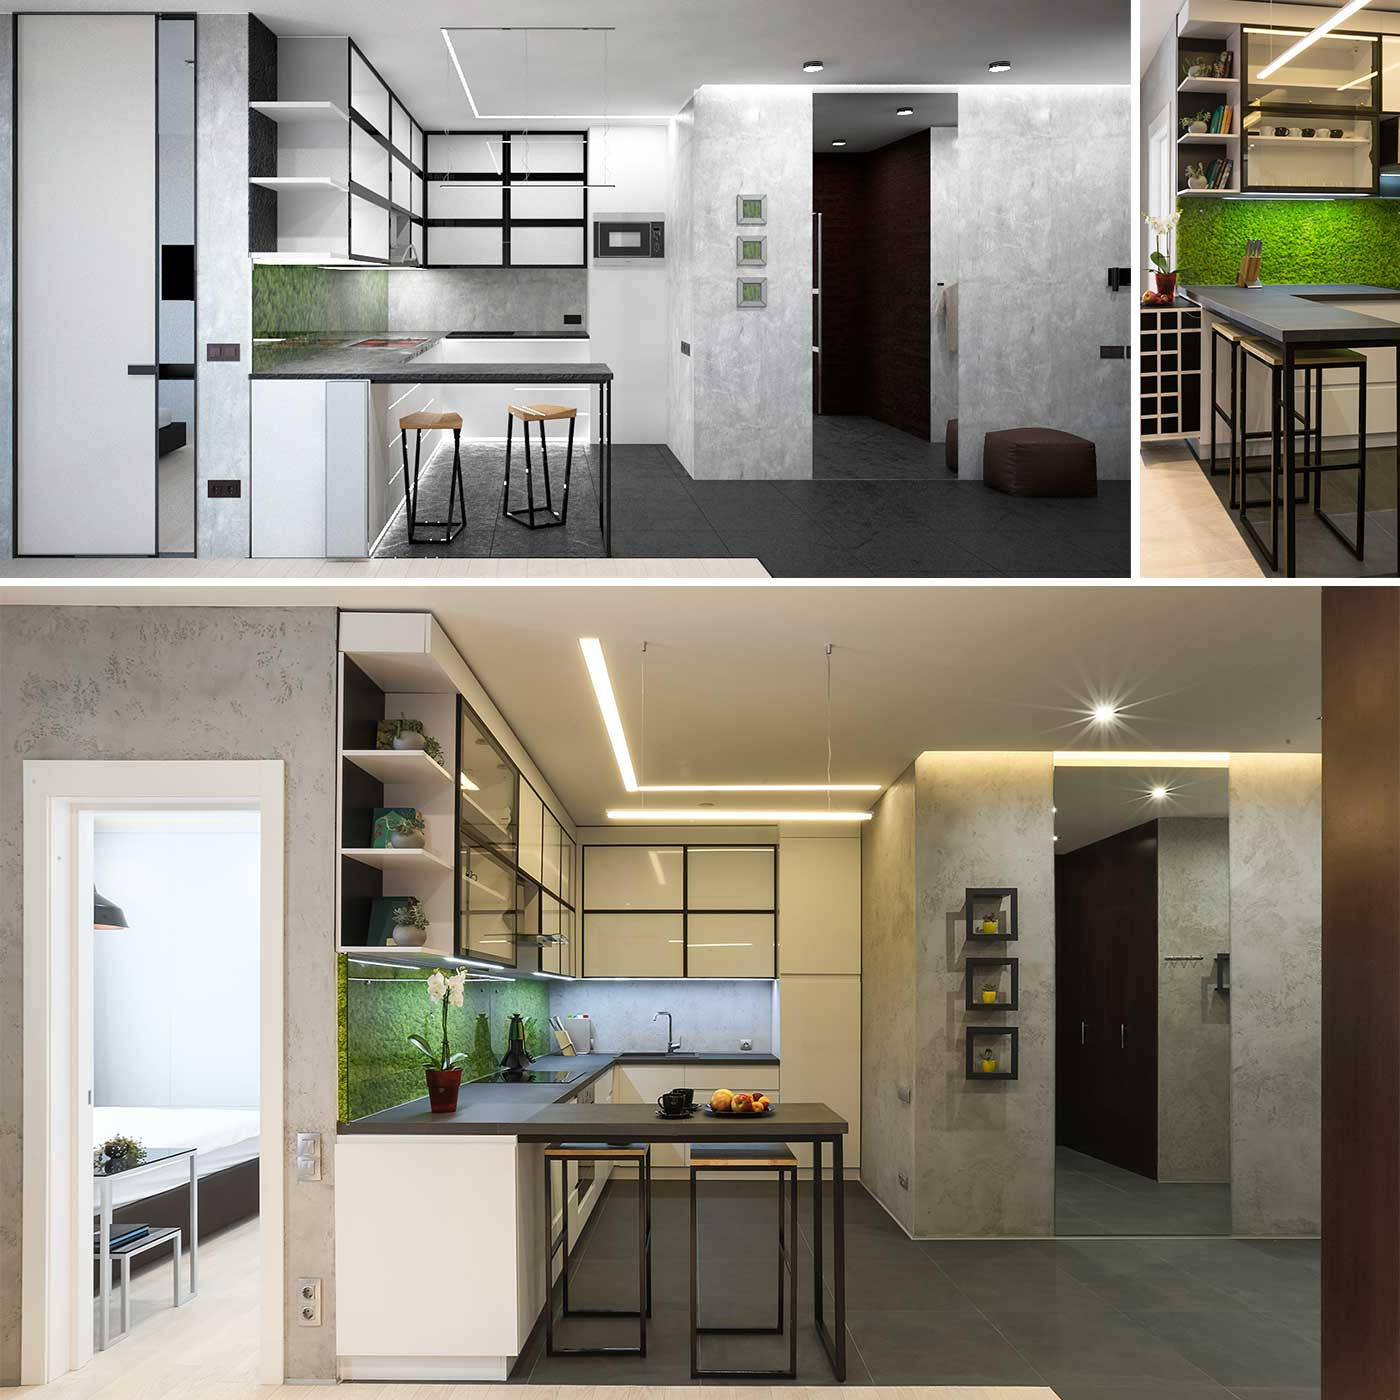 Interior design project you can see visualization before and photo after construction